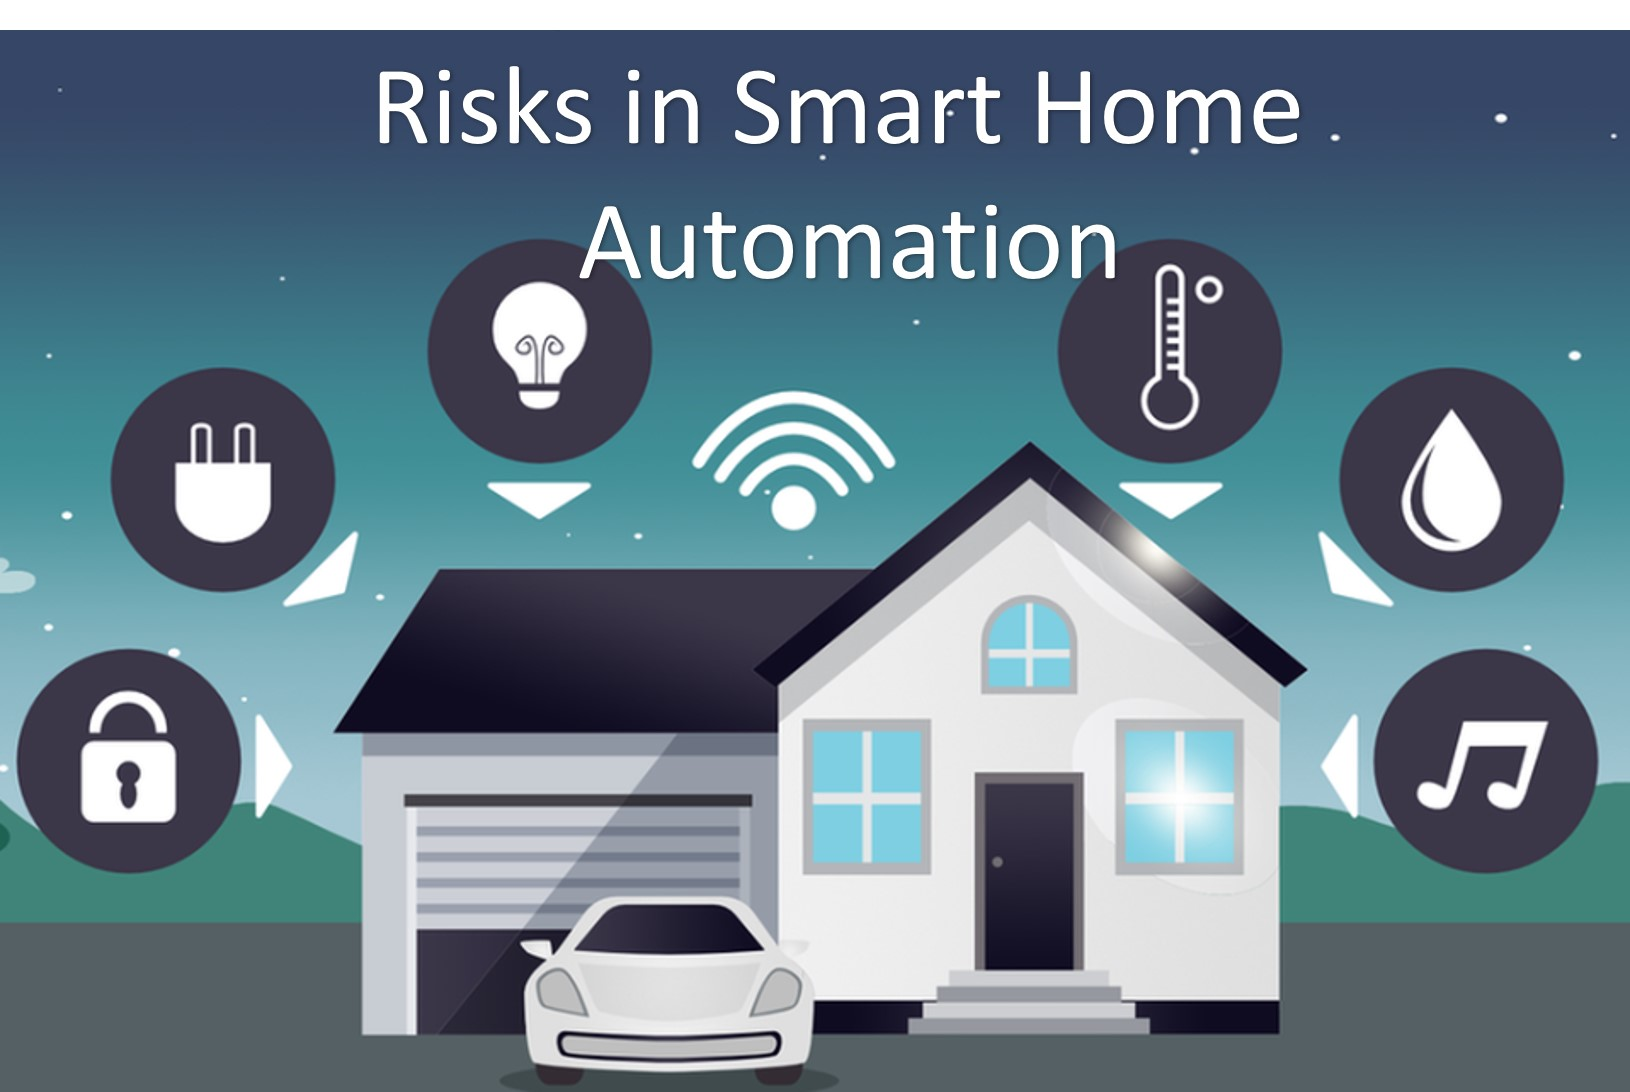 Major Risk and threats of having smart home